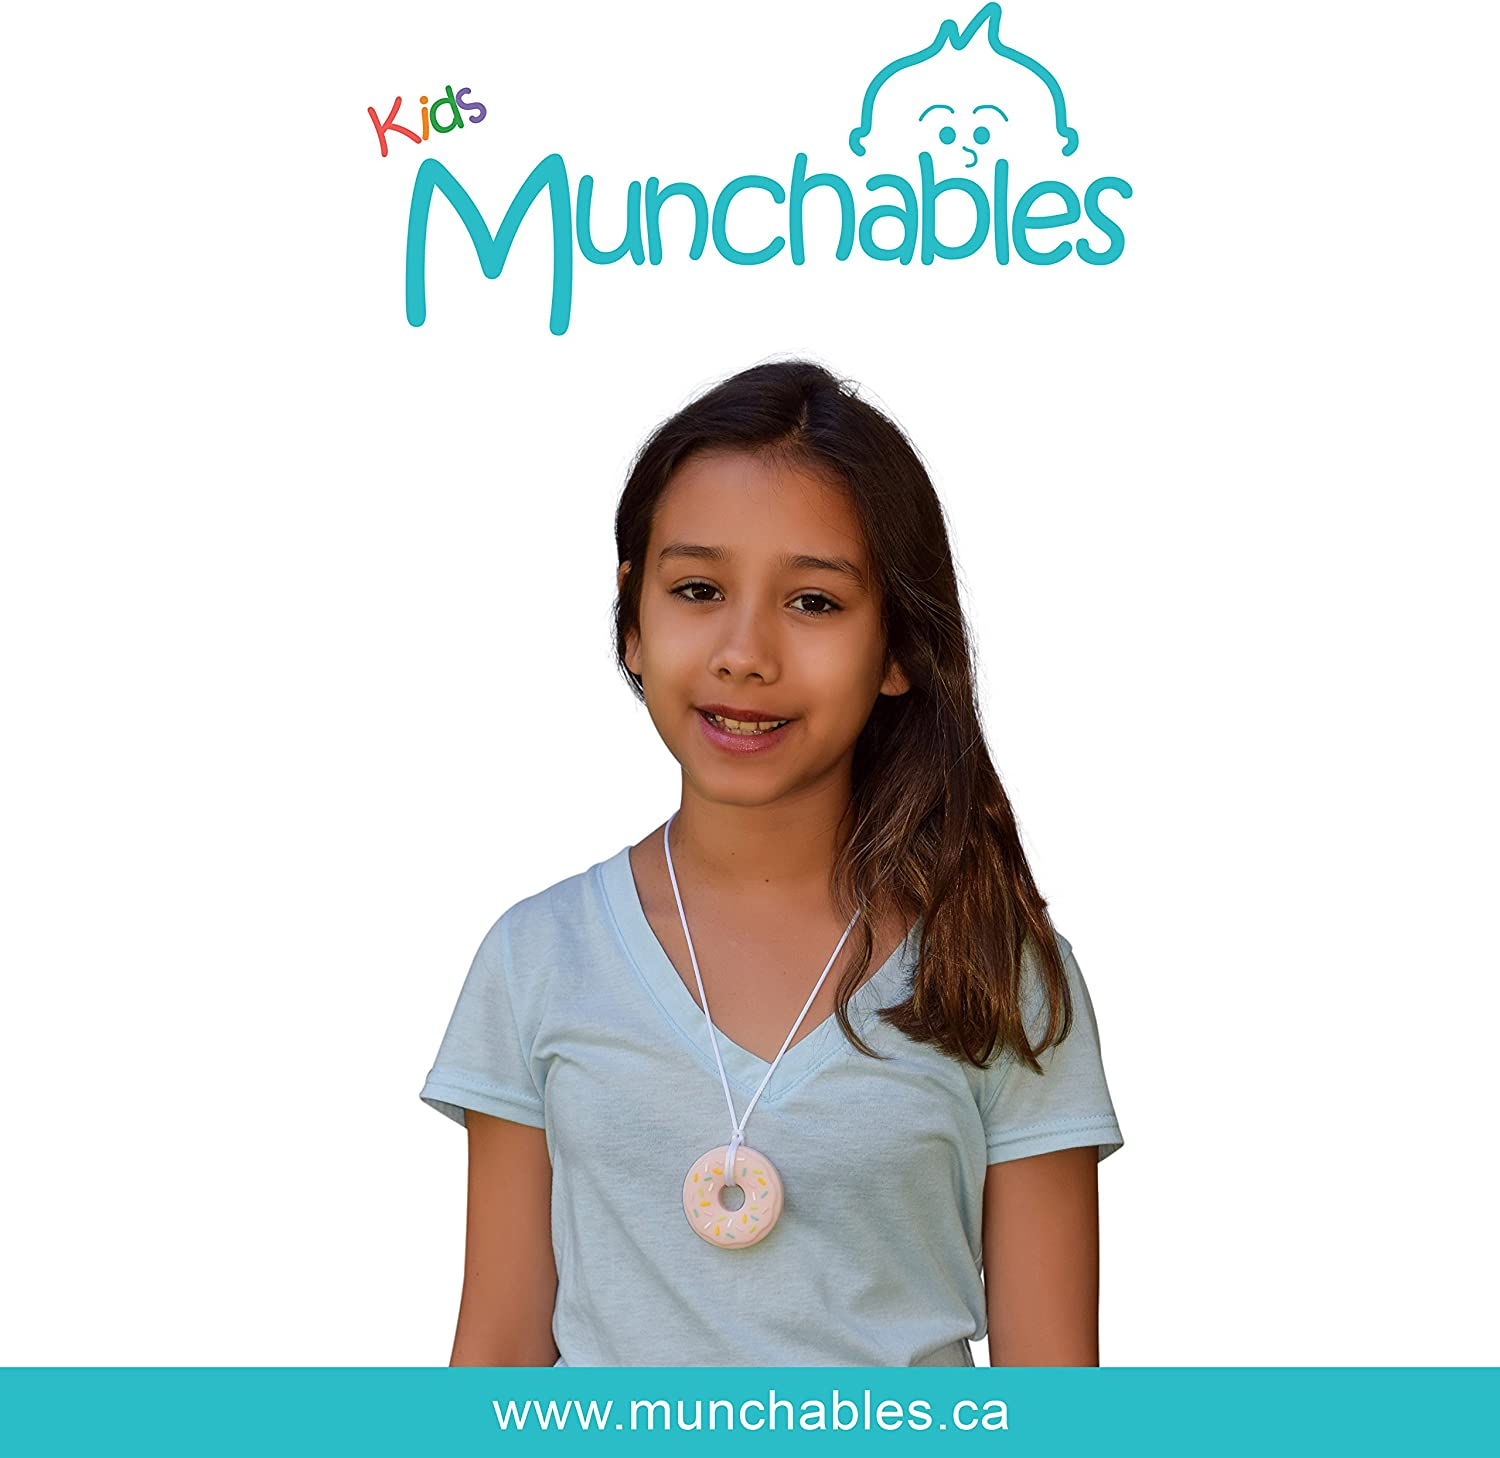 Donut Blue Sensory Oral Motor Aide Chewelry Necklace Chewy Jewelry for Sensory-Focused Kids with Autism or Special Needs